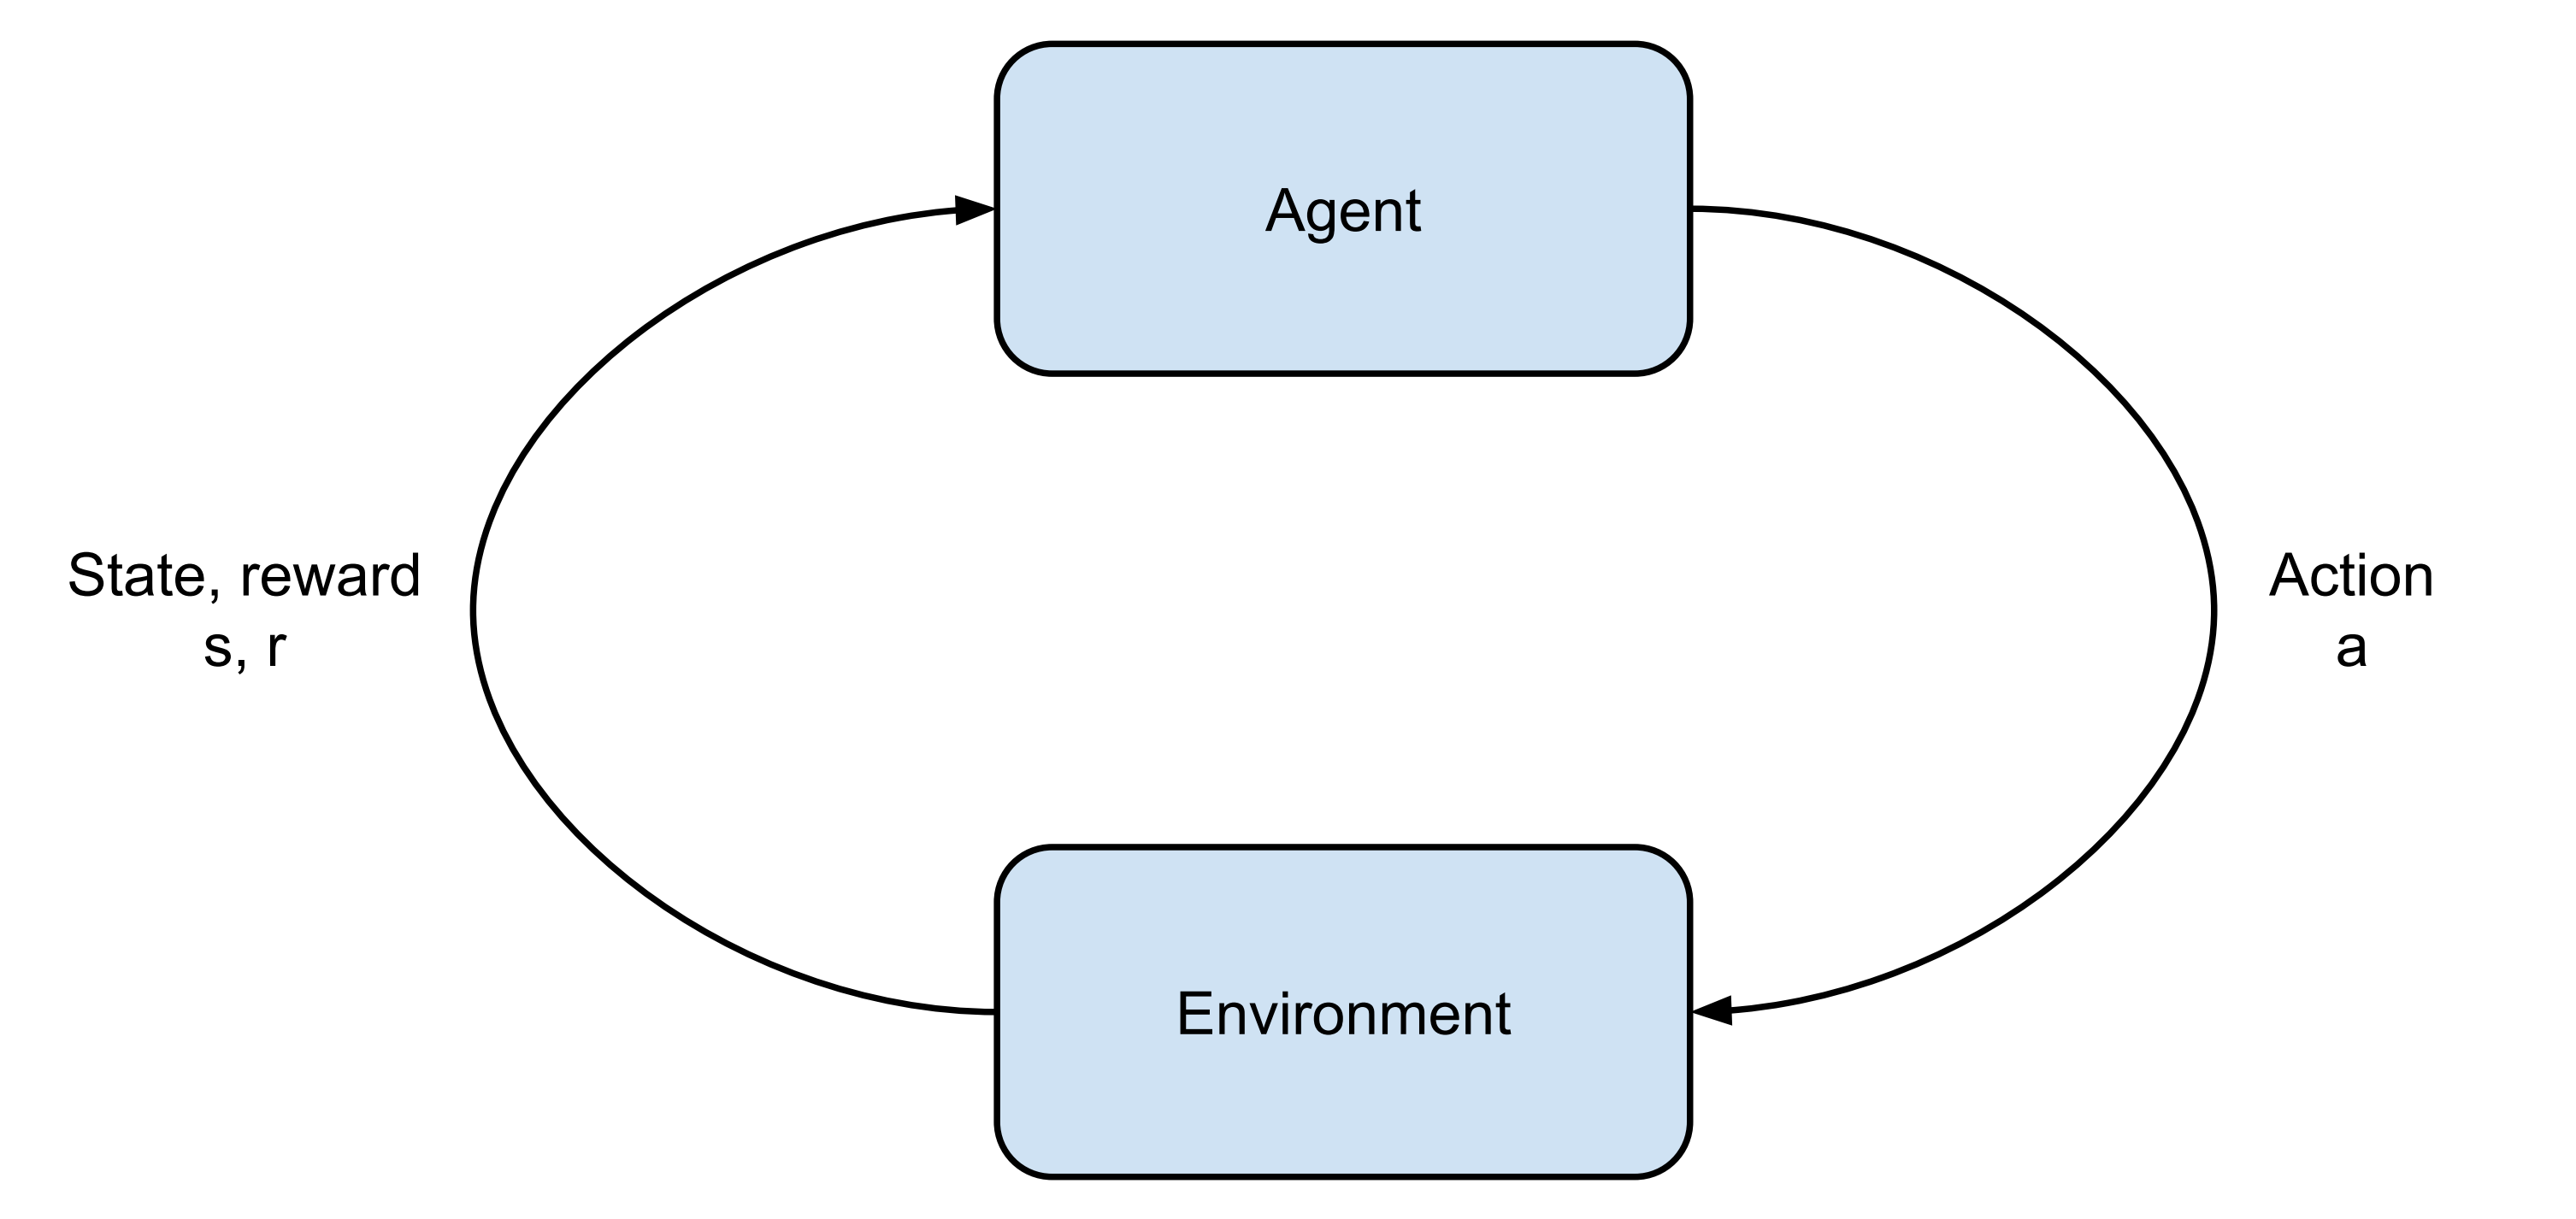 An illustration of the agent/environment interaction.